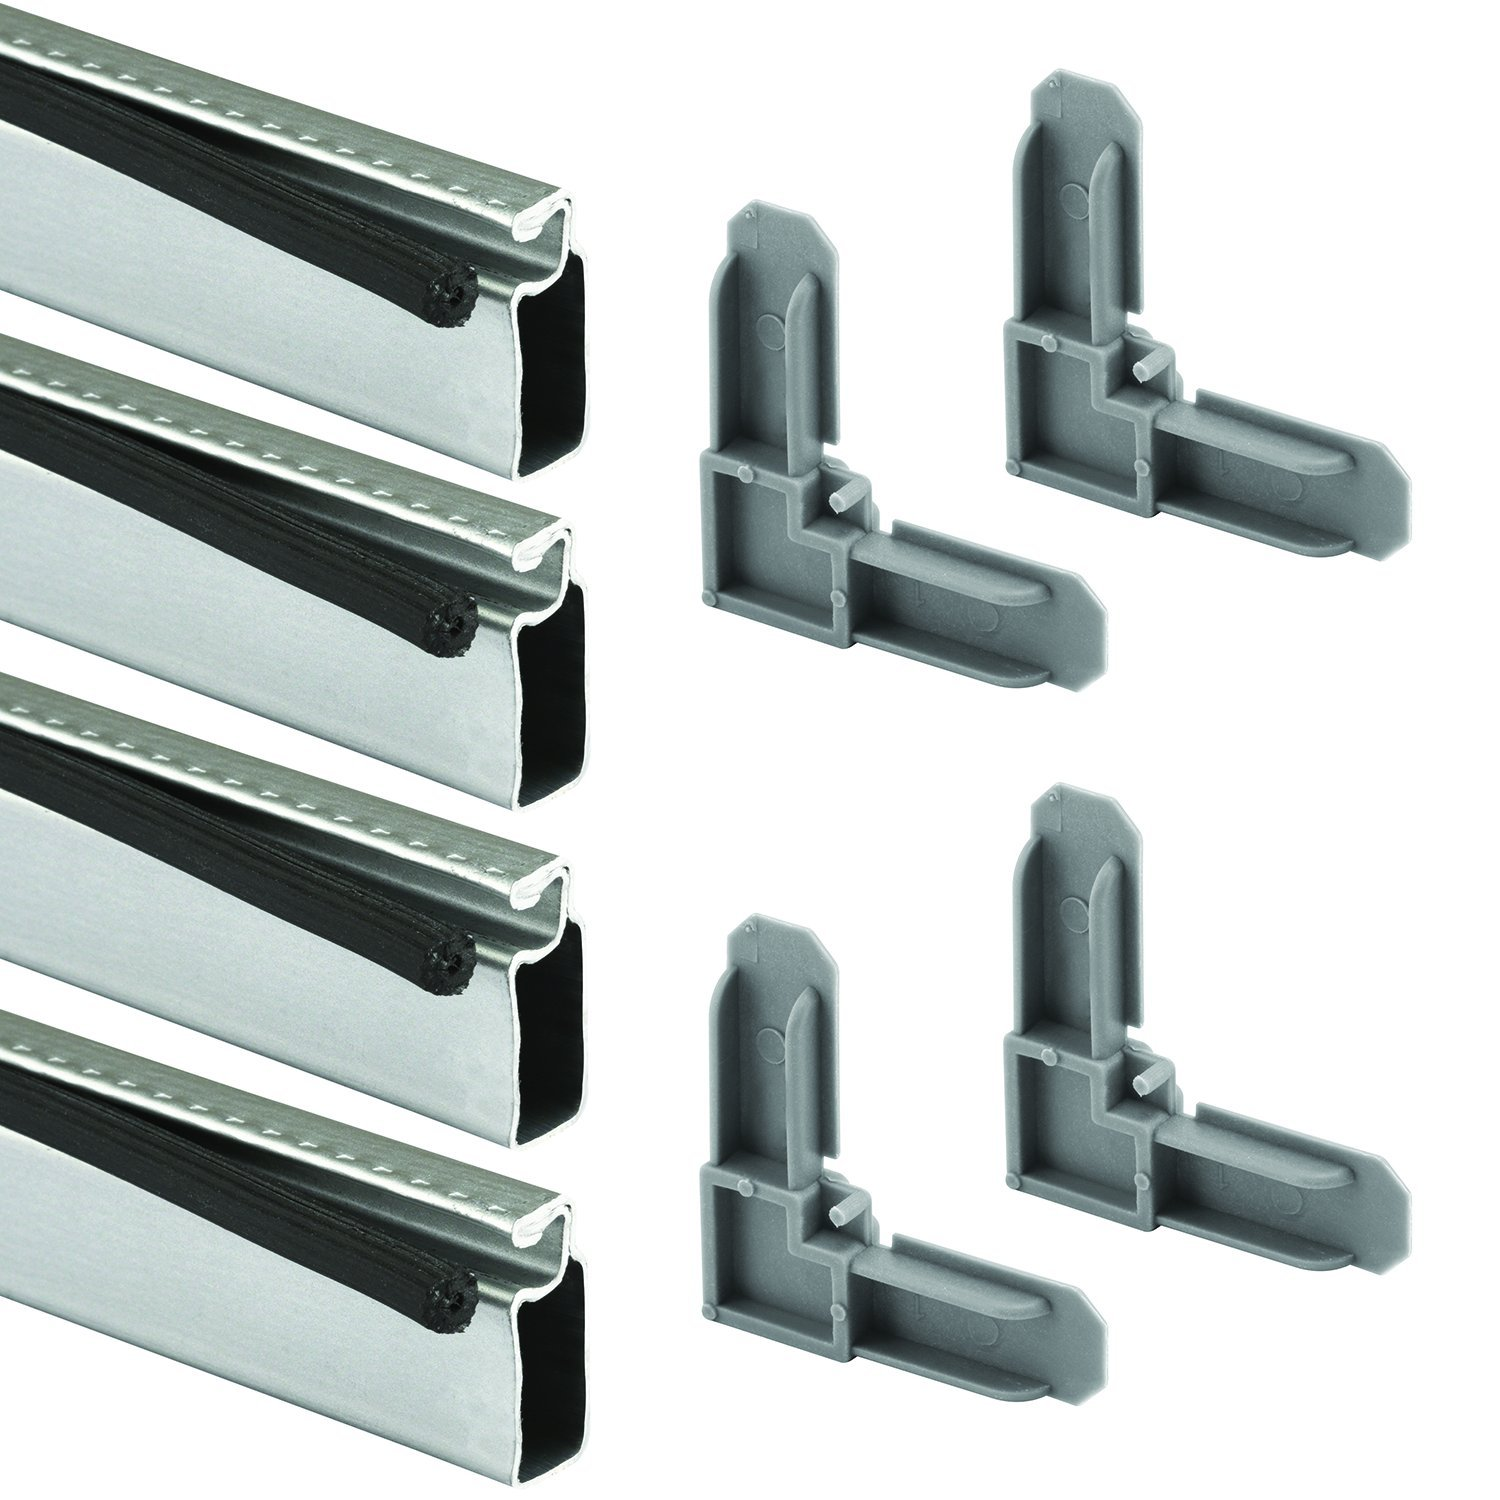 Prime-Line Products PL 7841 Screen Kit, 7/16-Inch X 3/4-Inch X 60-Inch X 60-Inch, Grey